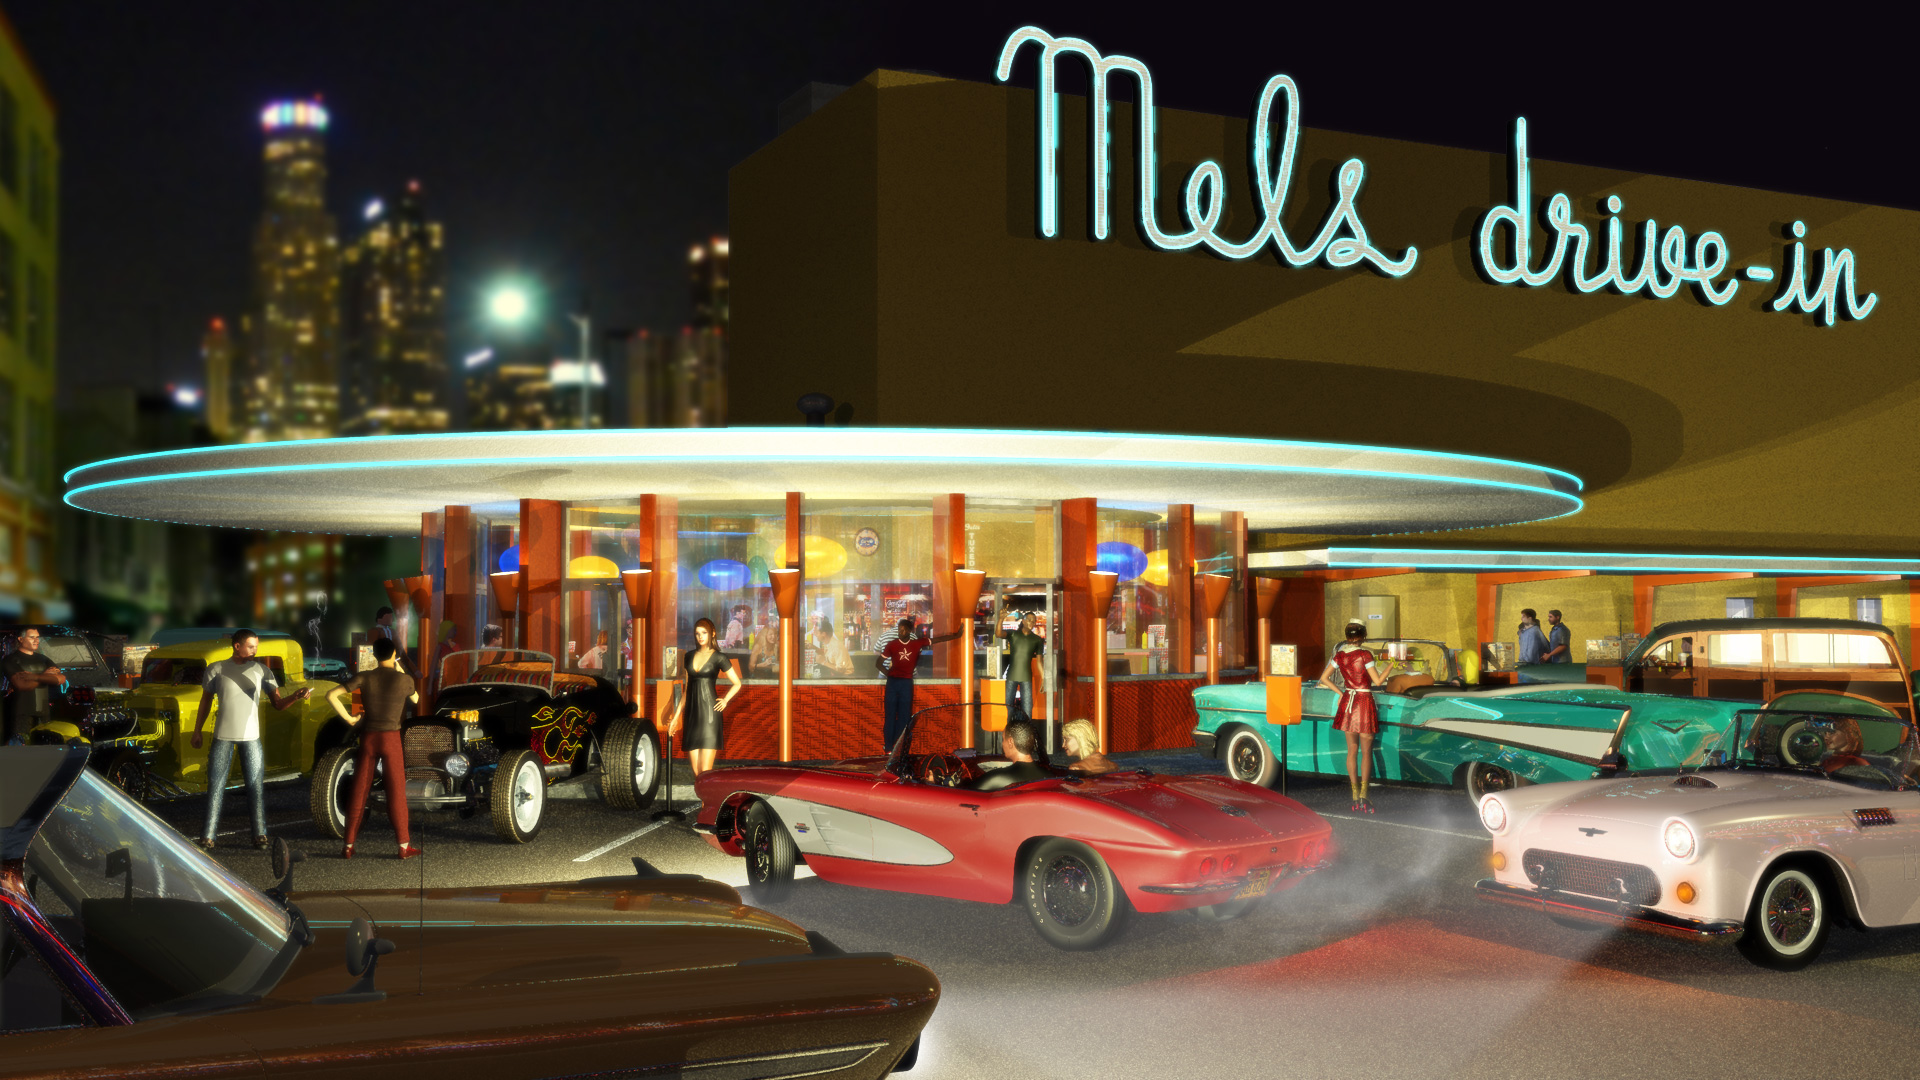 mels drivein california diner - HD 1920×1080